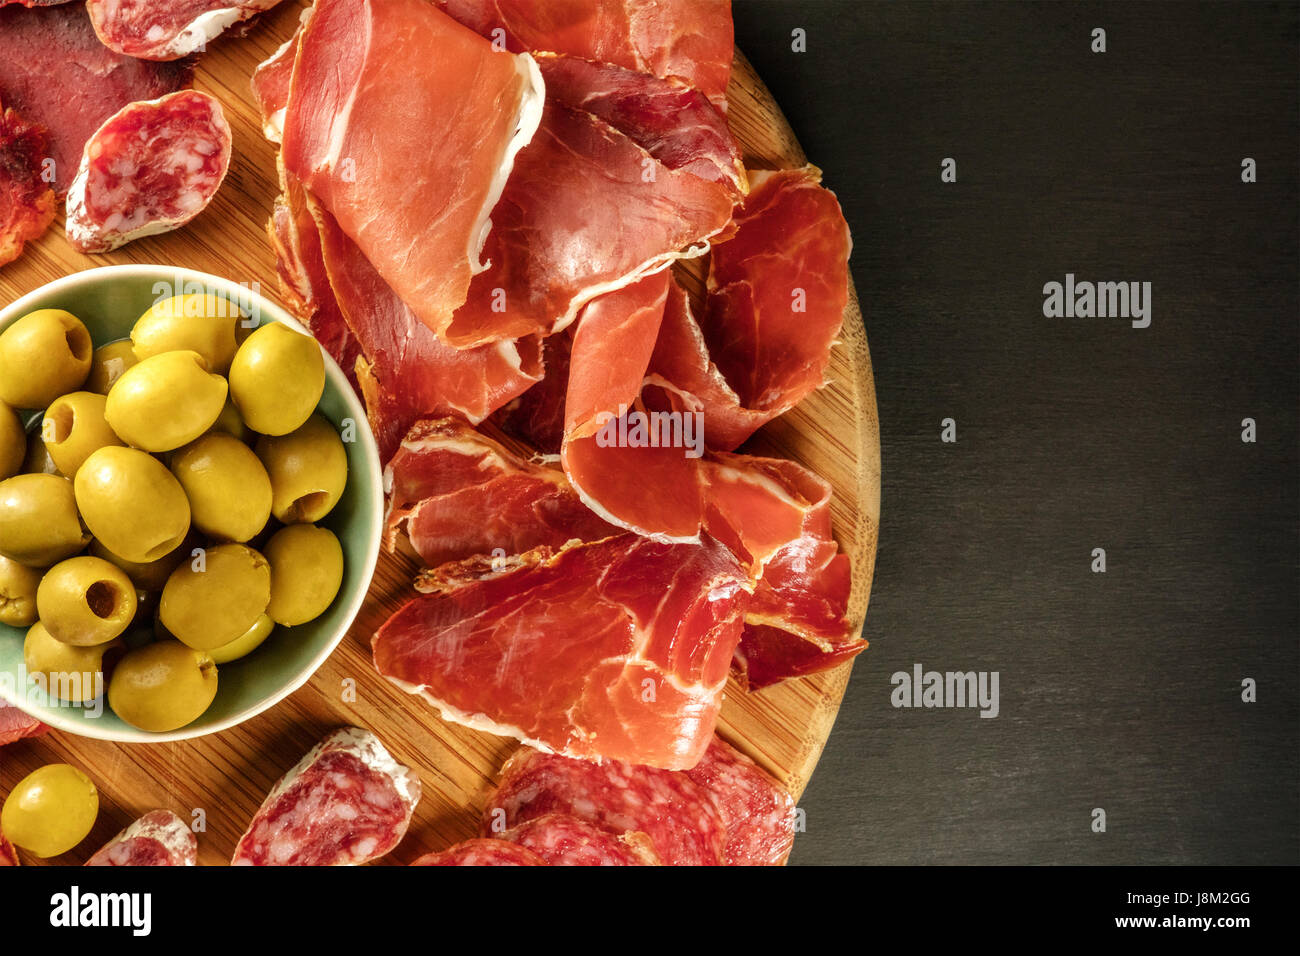 An overhead photo of a Spanish cold meats platter with jamon and payes sausage, with green olives, on a dark background - Stock Image